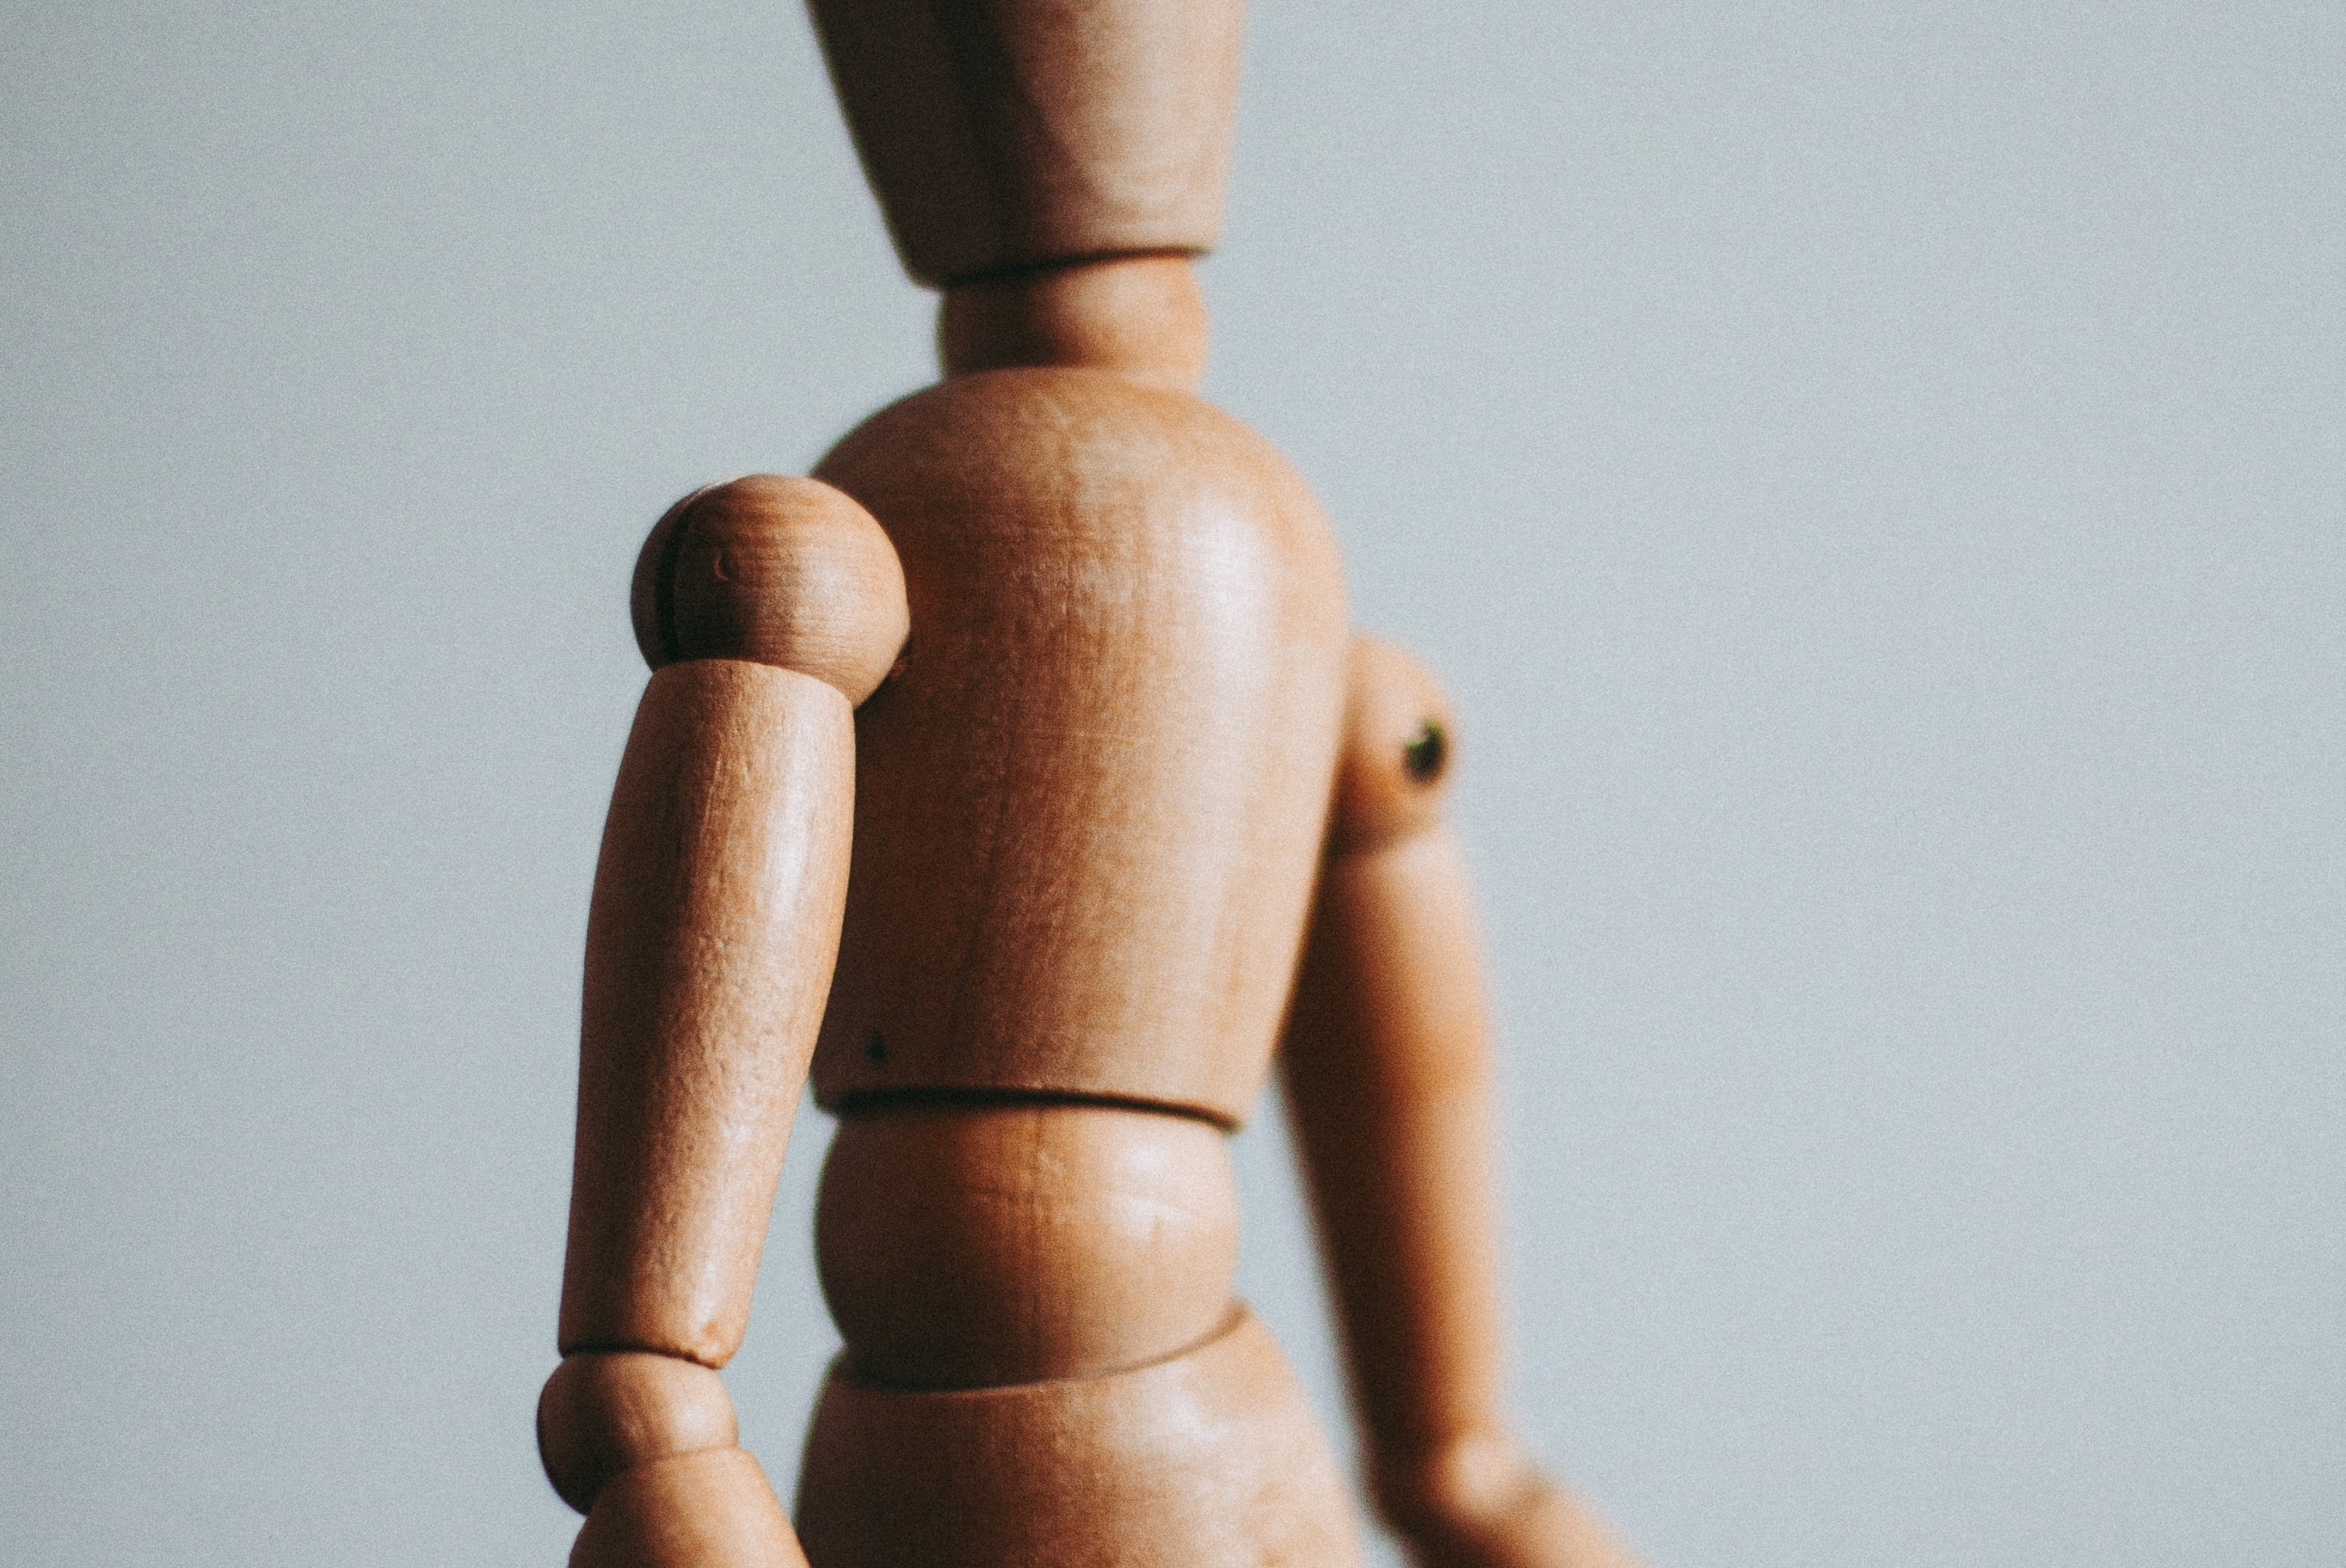 Wooden body parts model